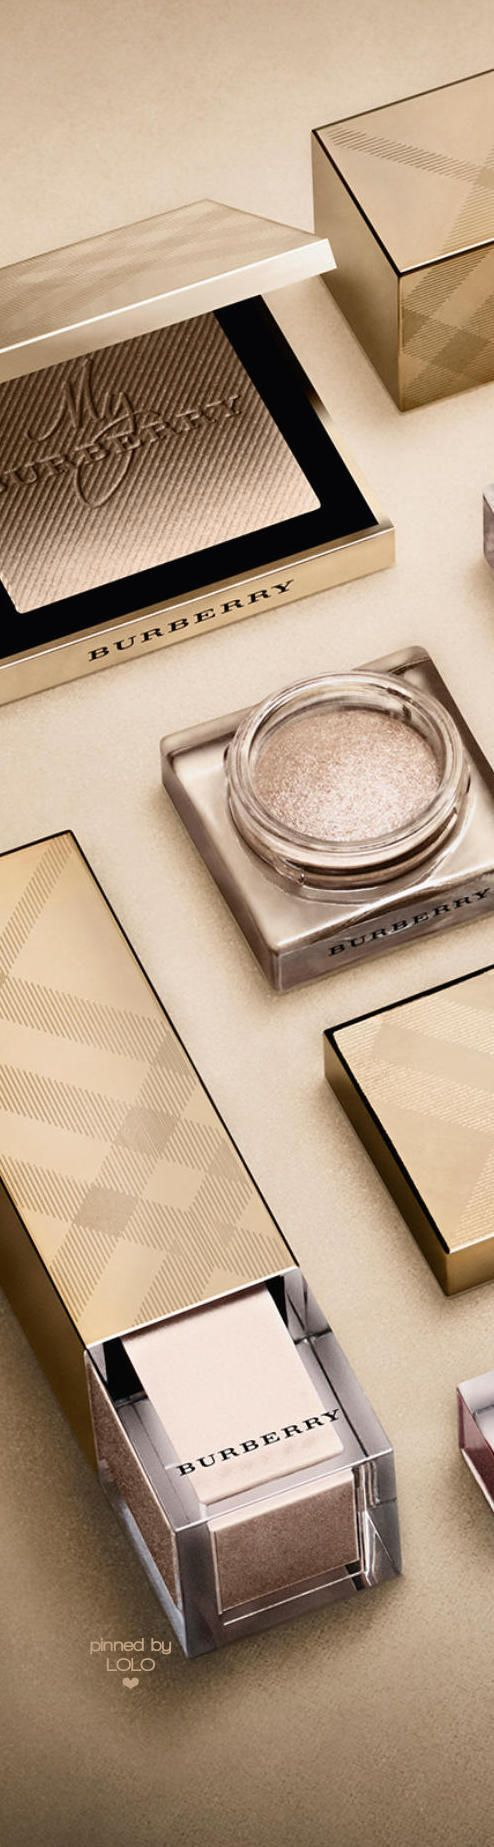 Burberry Makeup Gold   LOLO❤︎